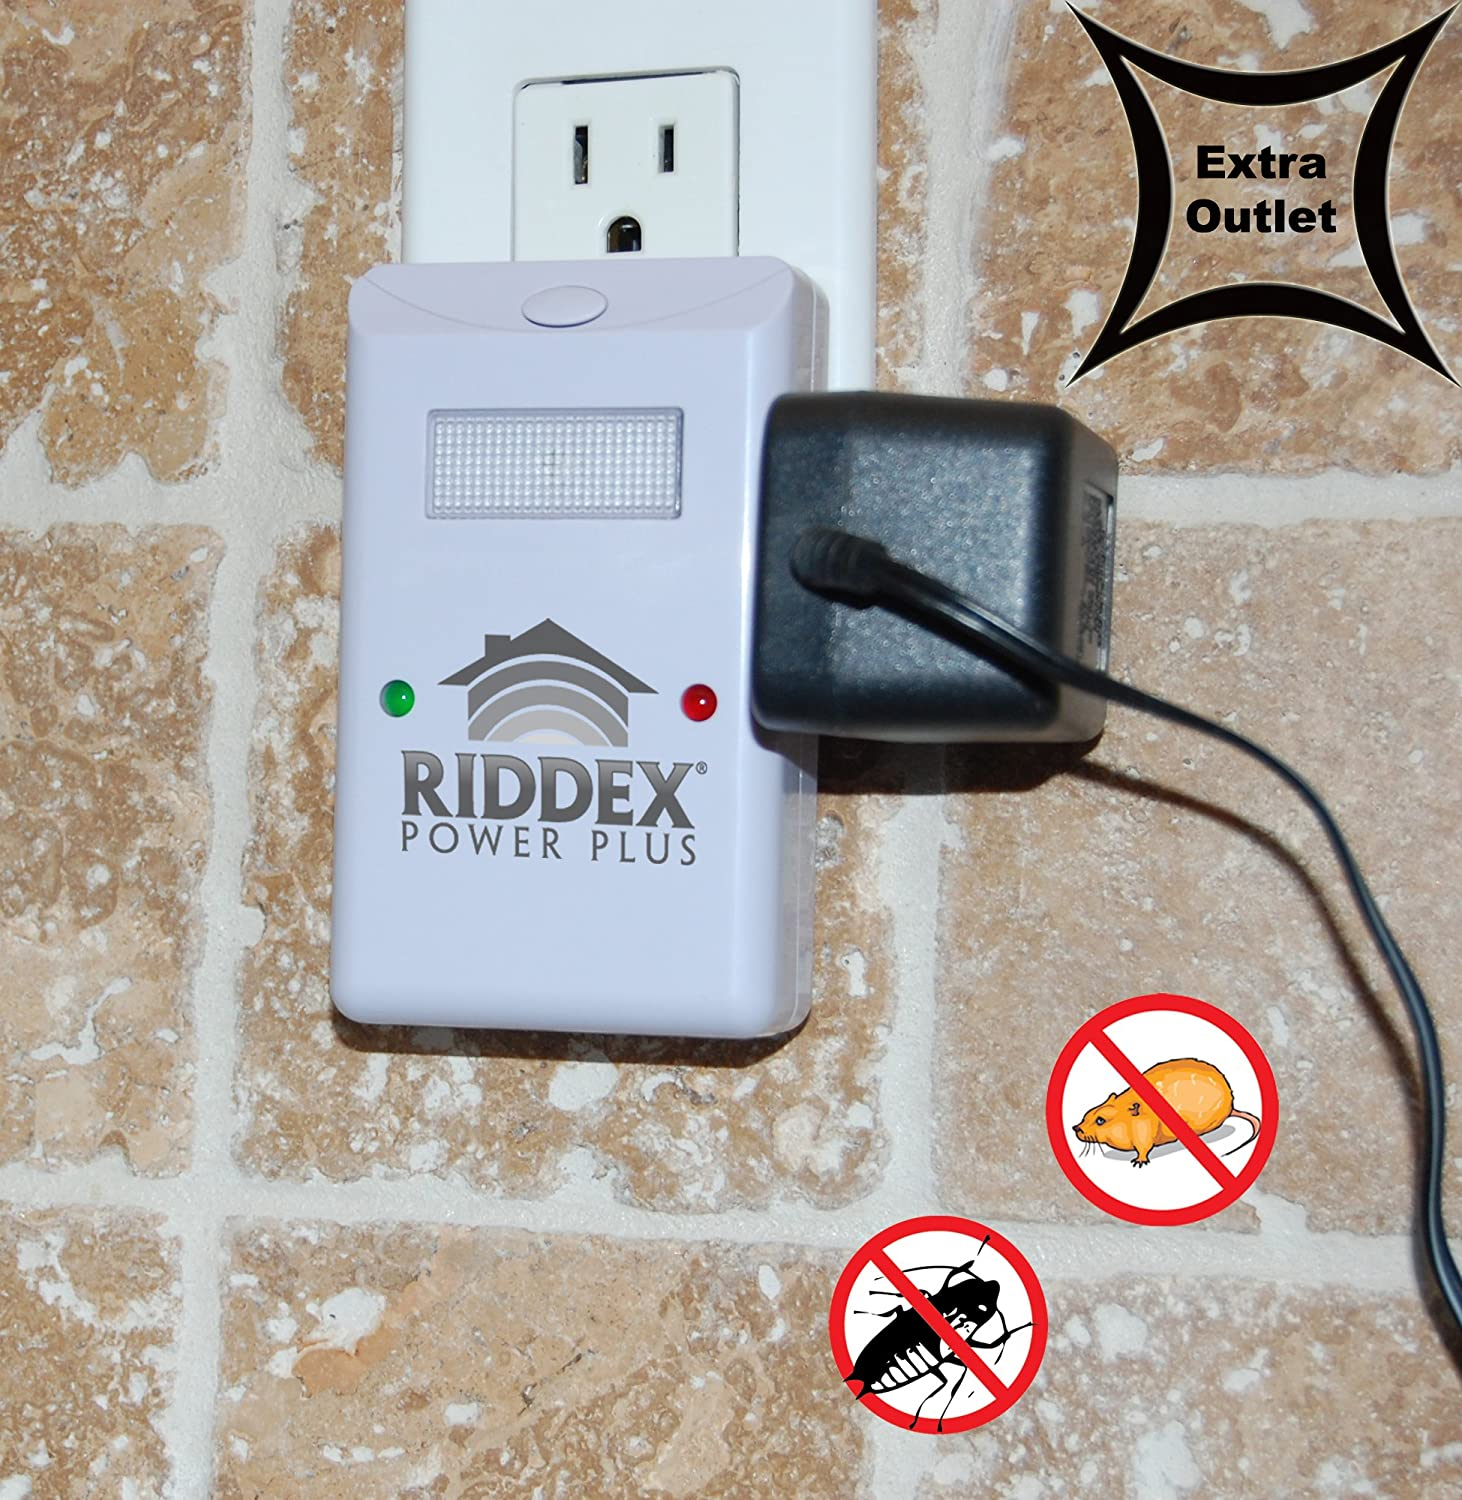 Amazon.com: Riddex Power Plus w/luz nocturna y Side Outlet ...